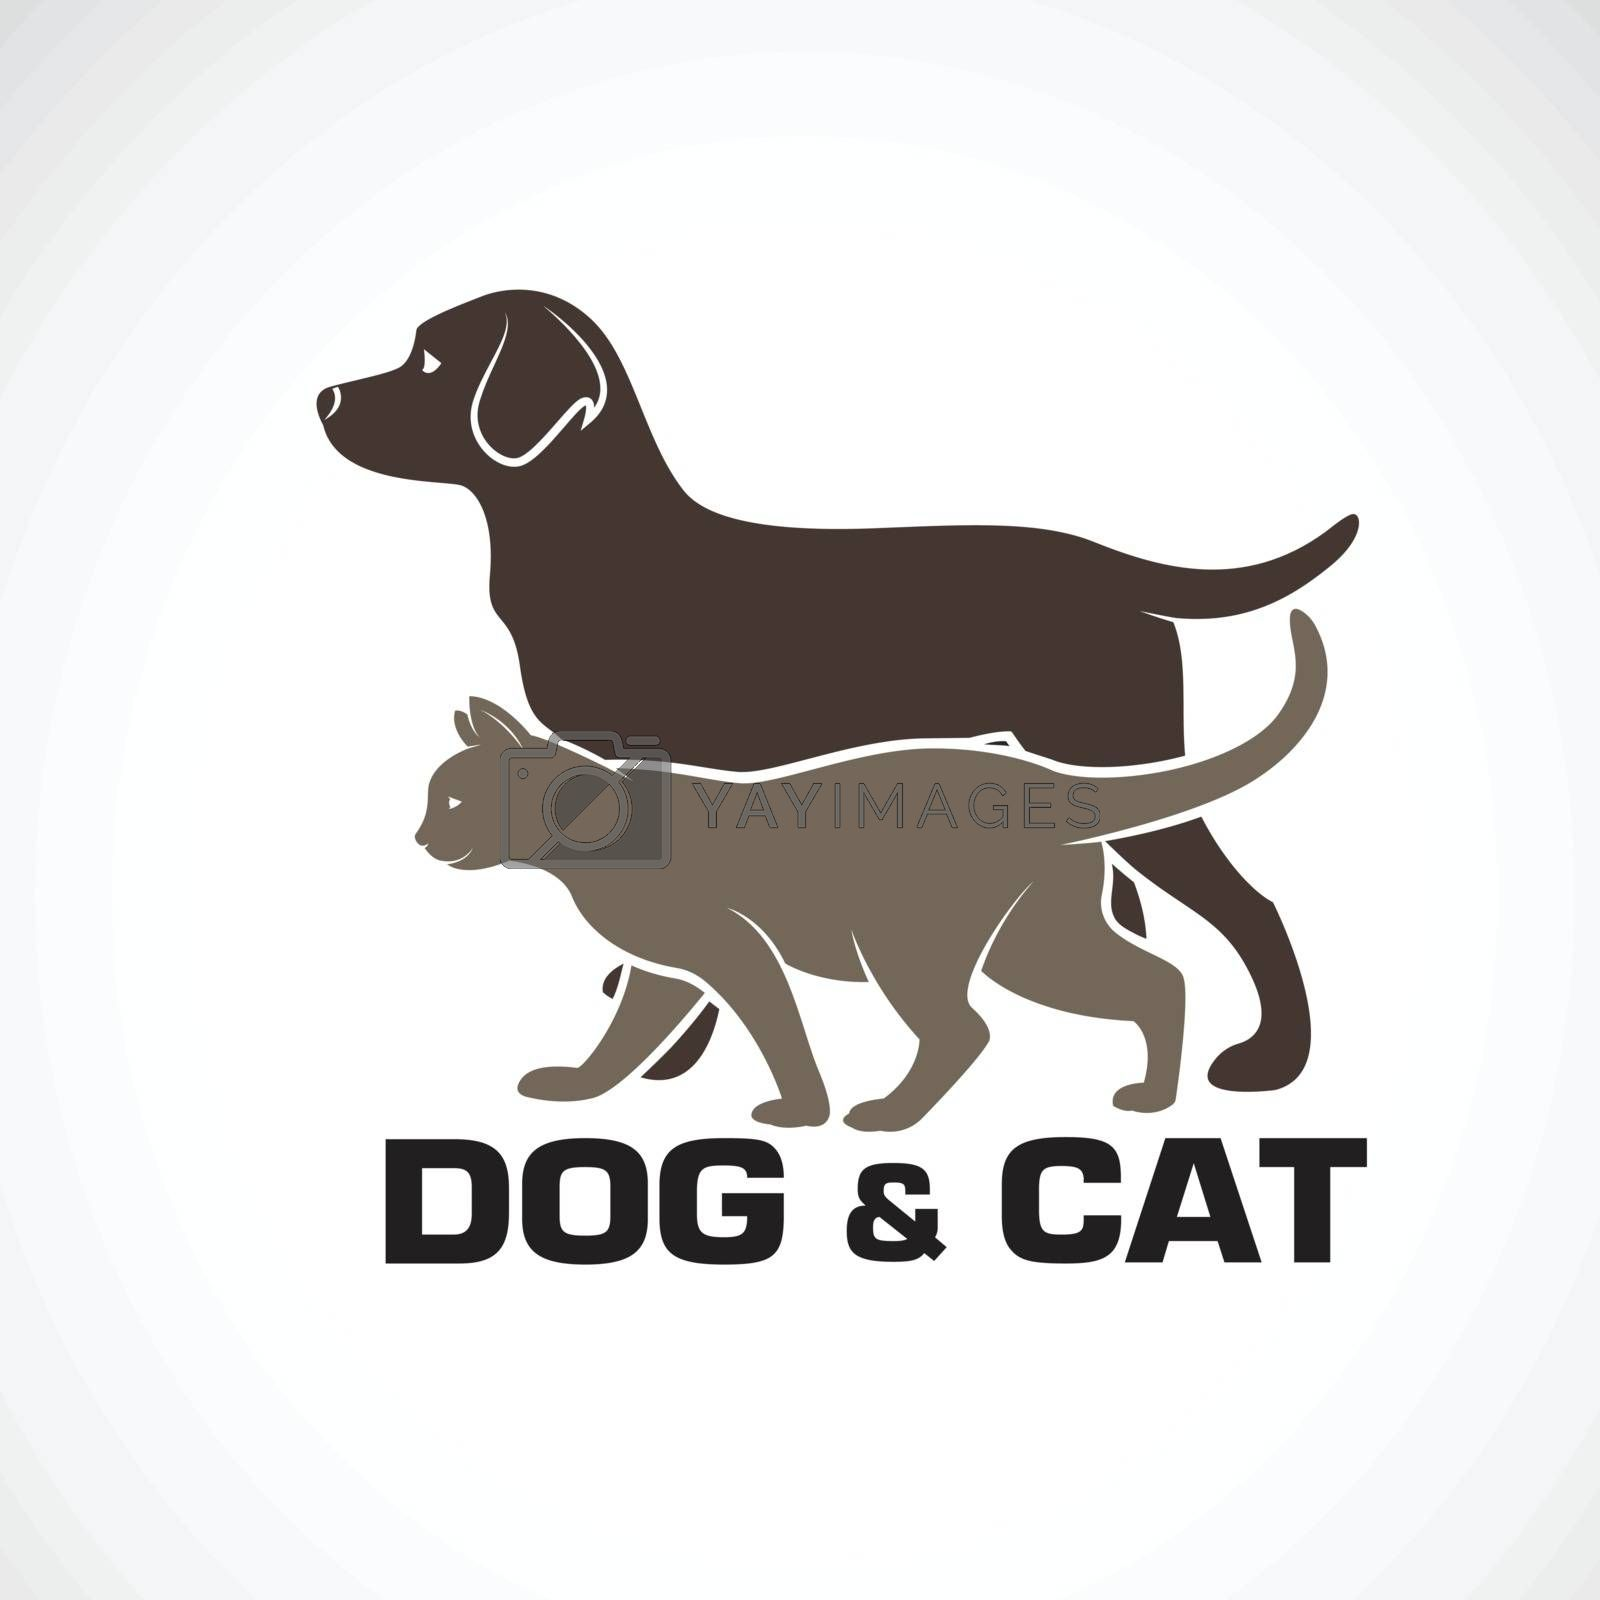 Vector of a dog and cat design on white background. Animal. Pet  by yod67